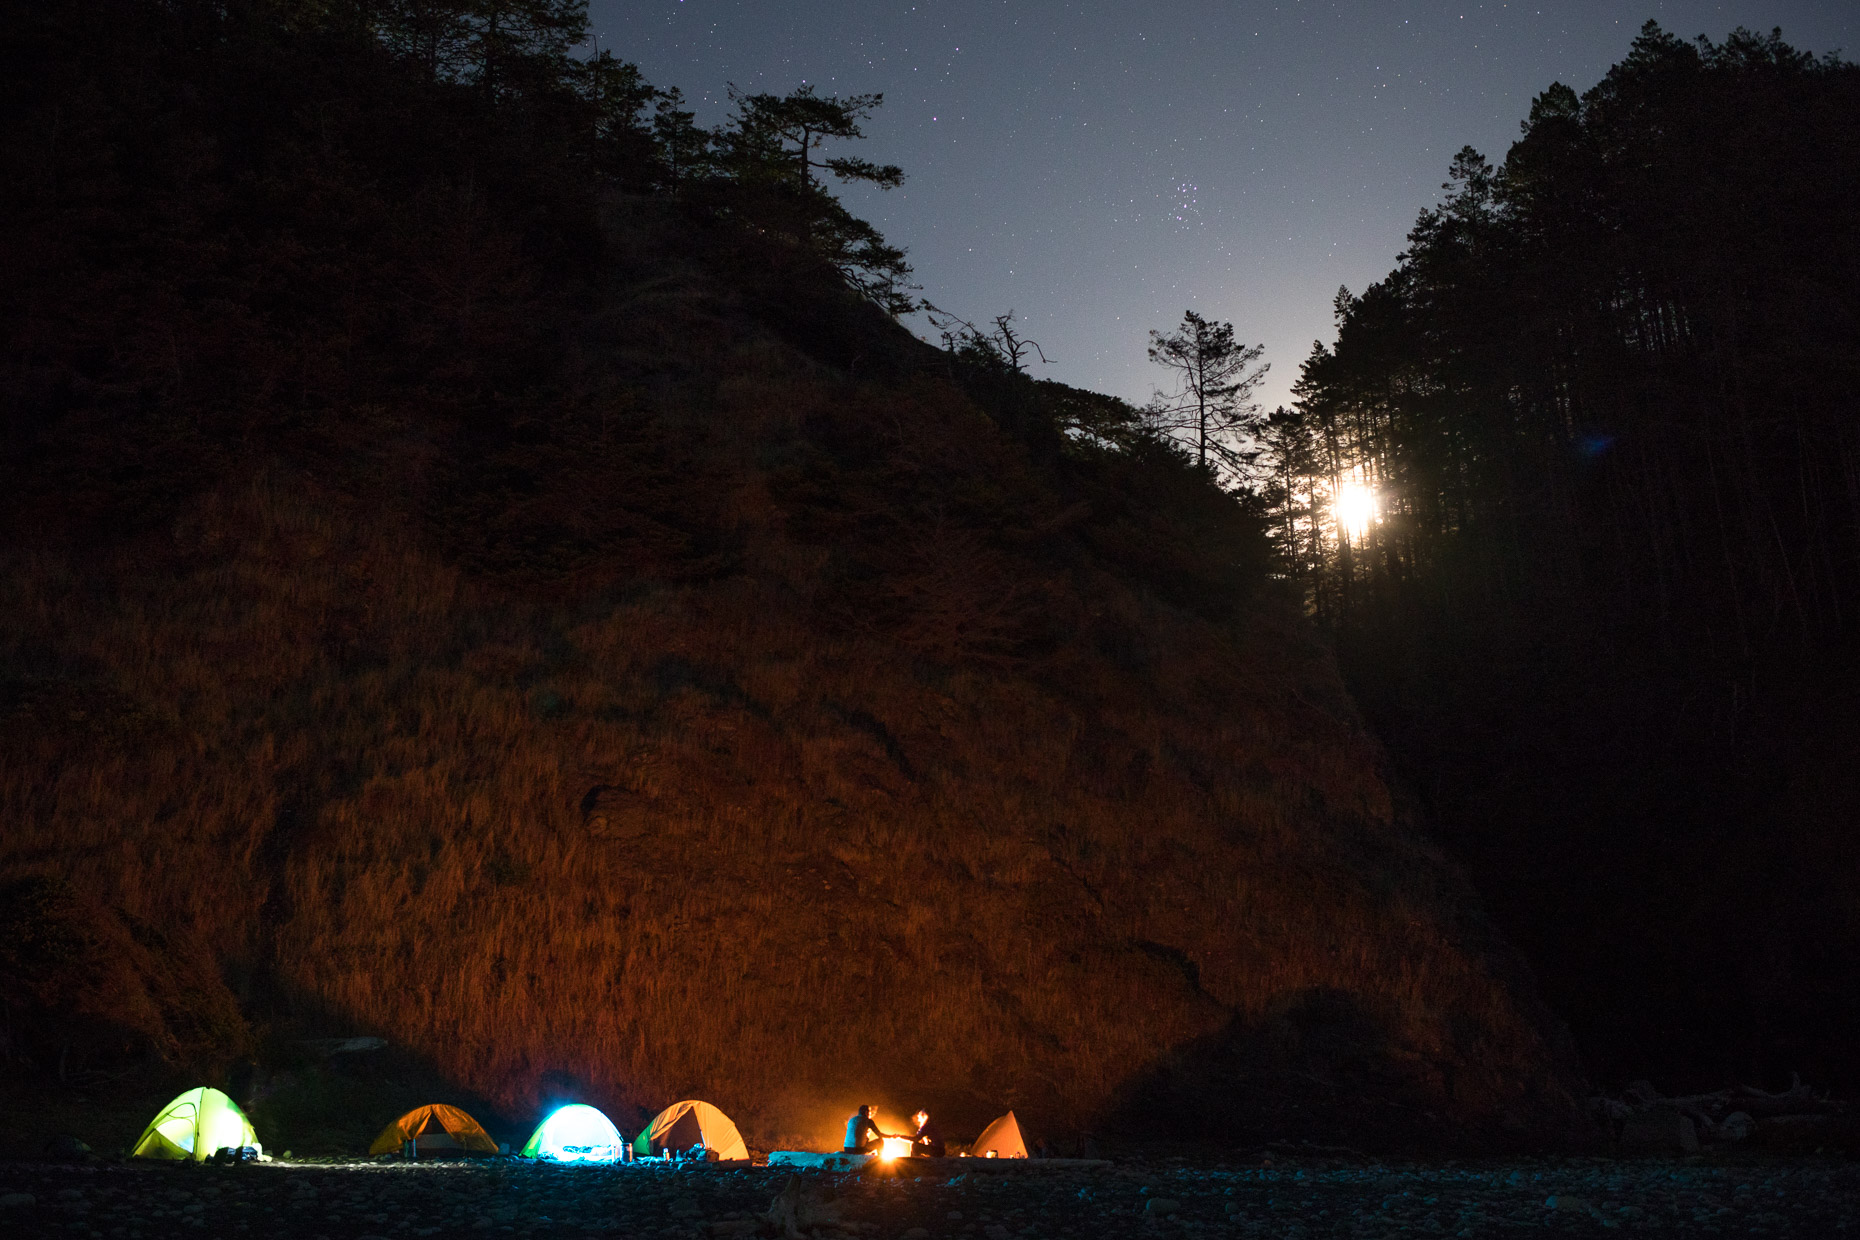 Fire illuminates the backpackers campsite